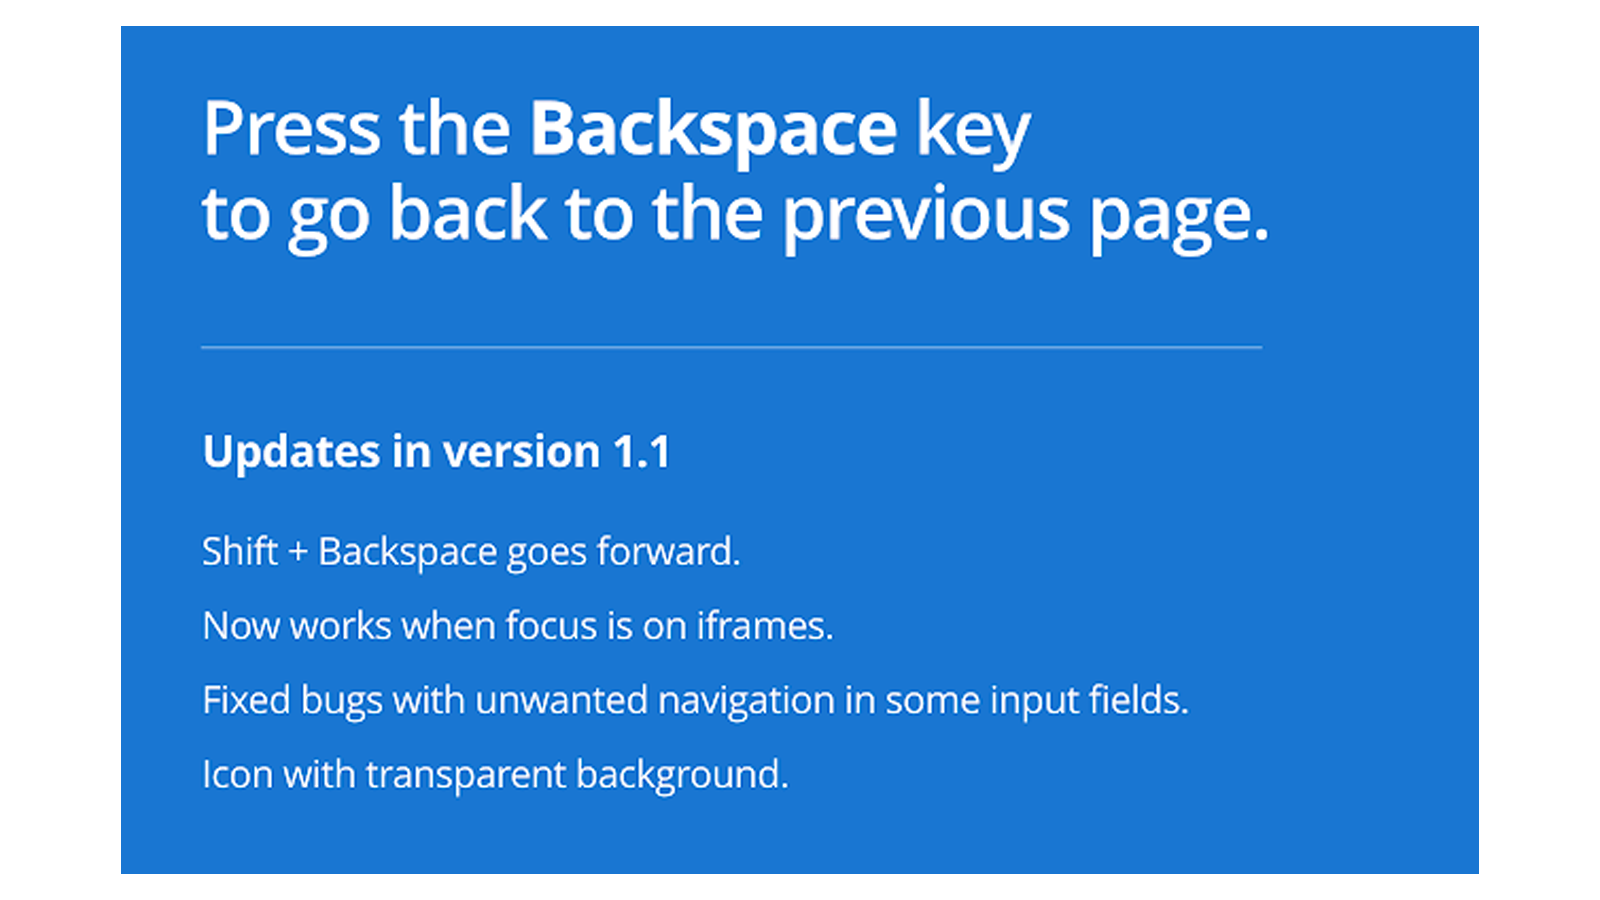 Backspace to go back app lets you do just that